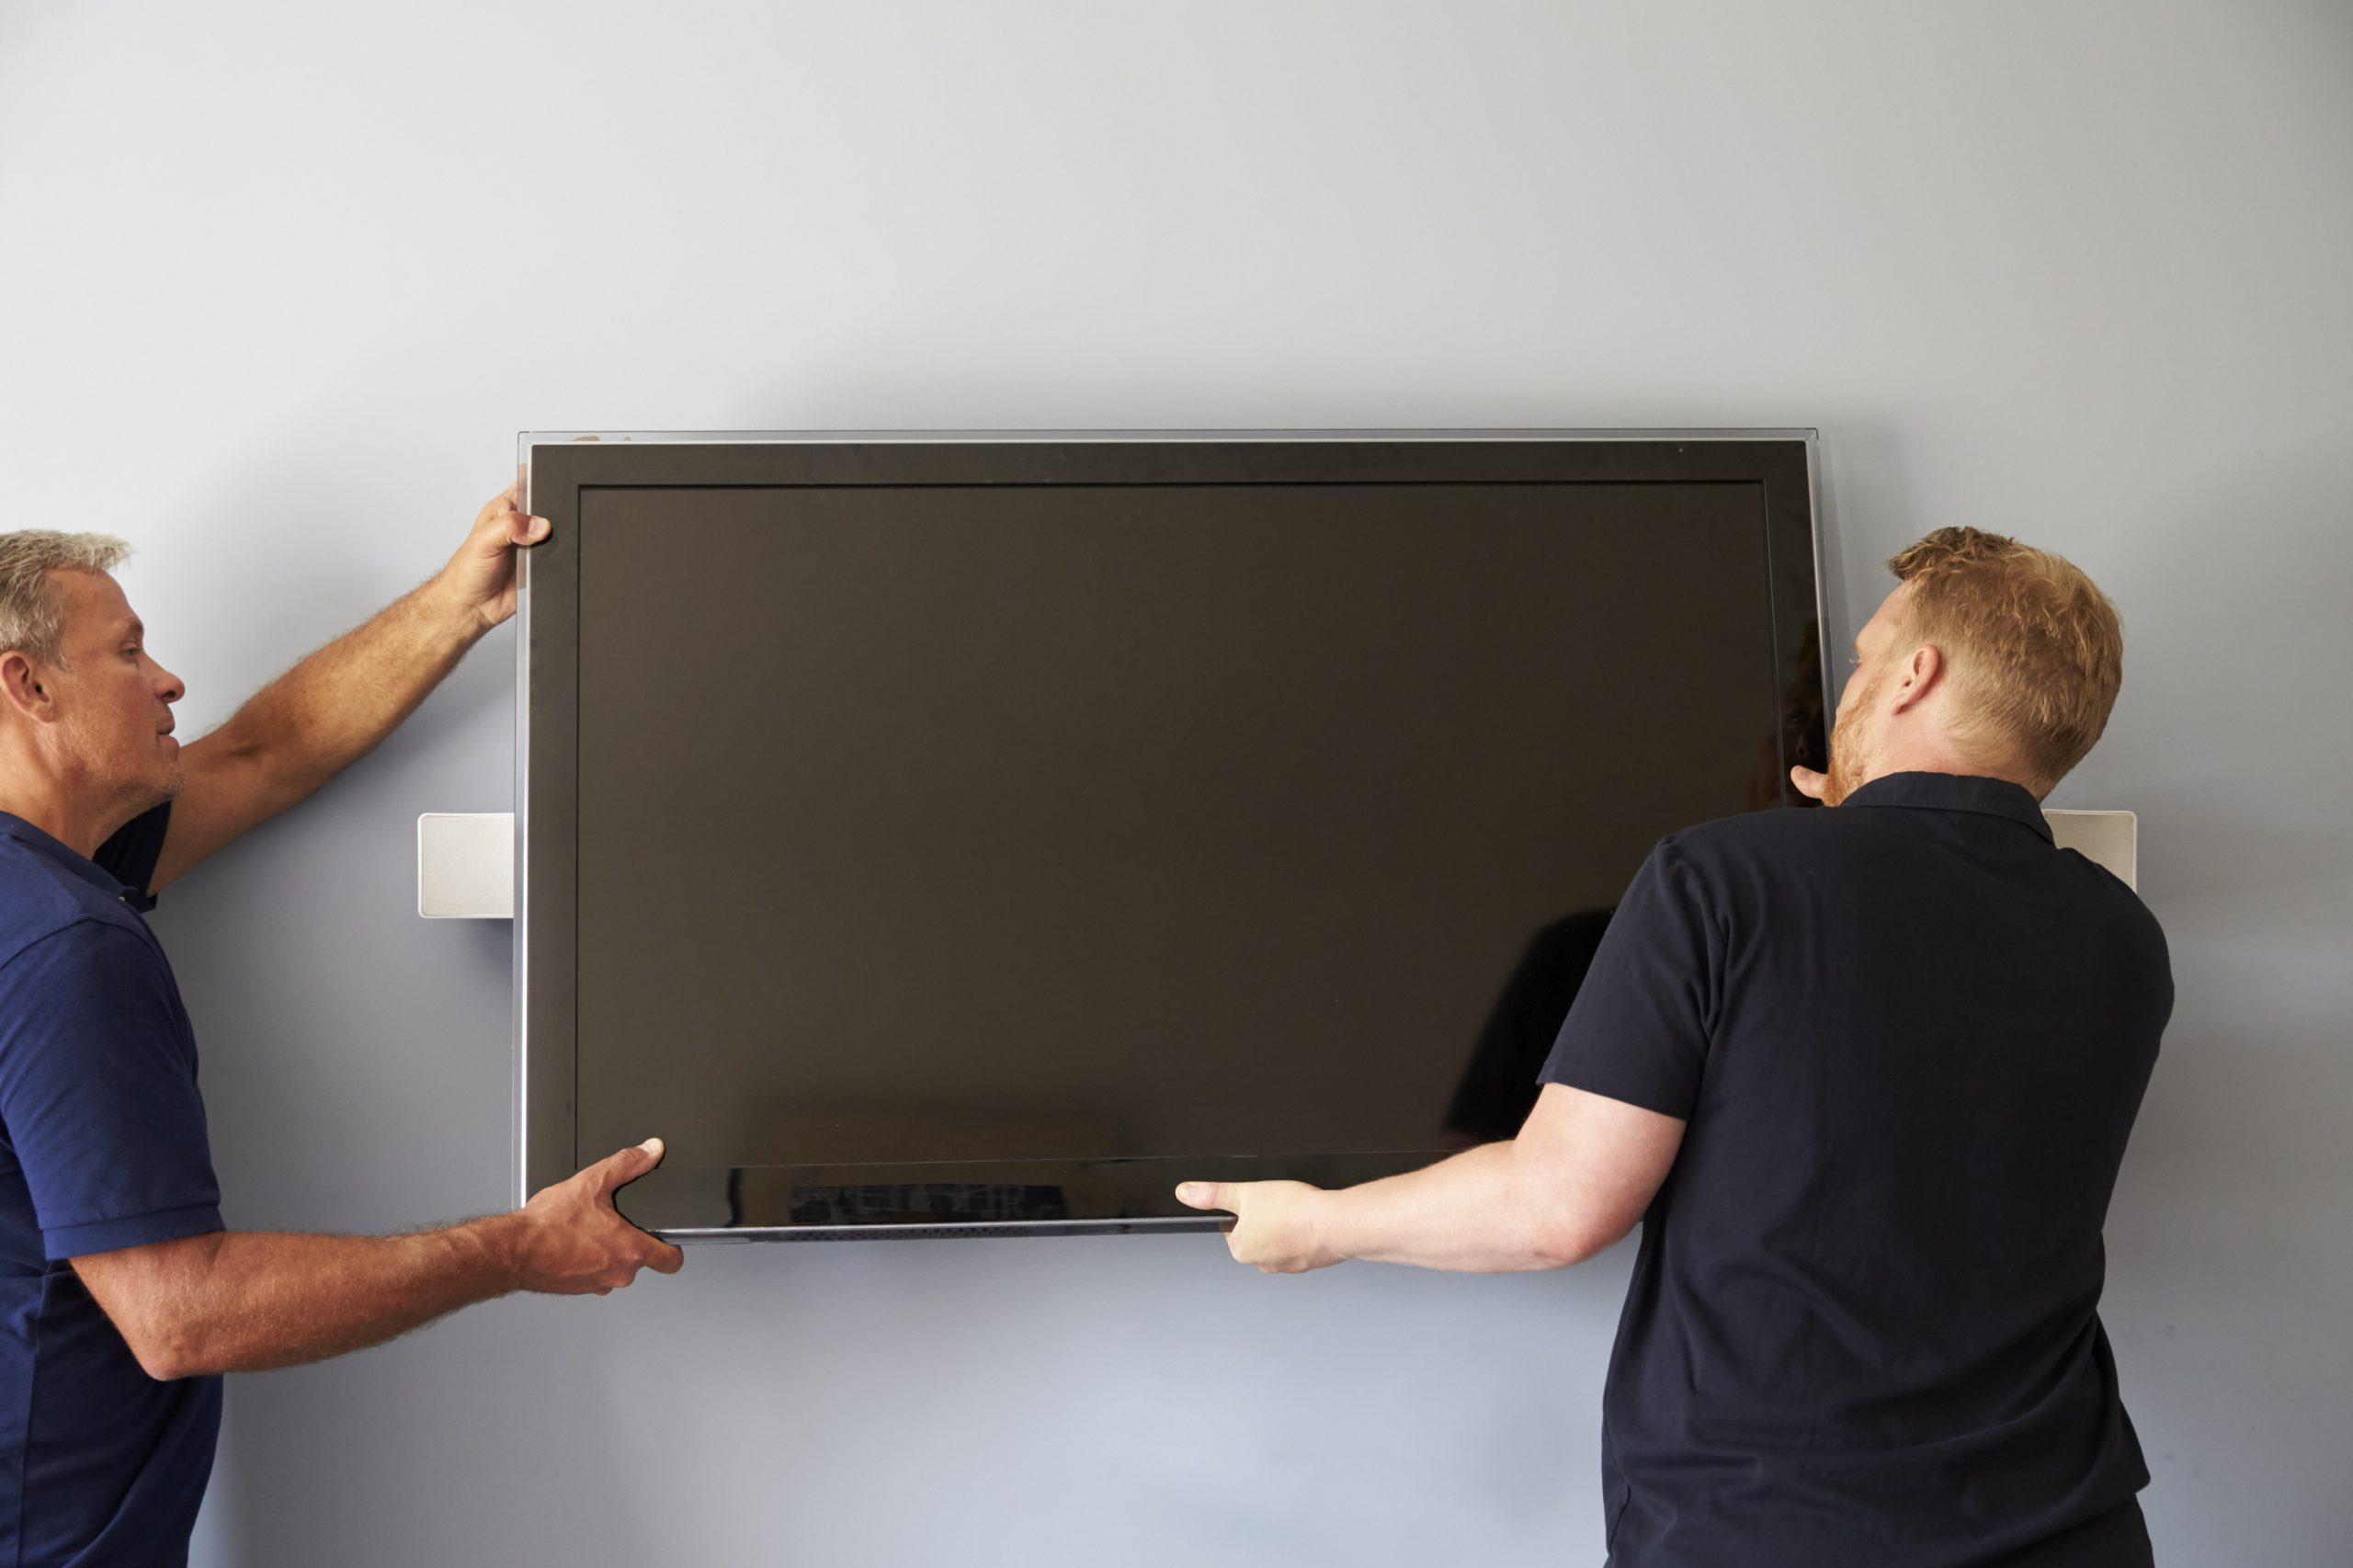 How To Mount A Tv On The Wall Properly?